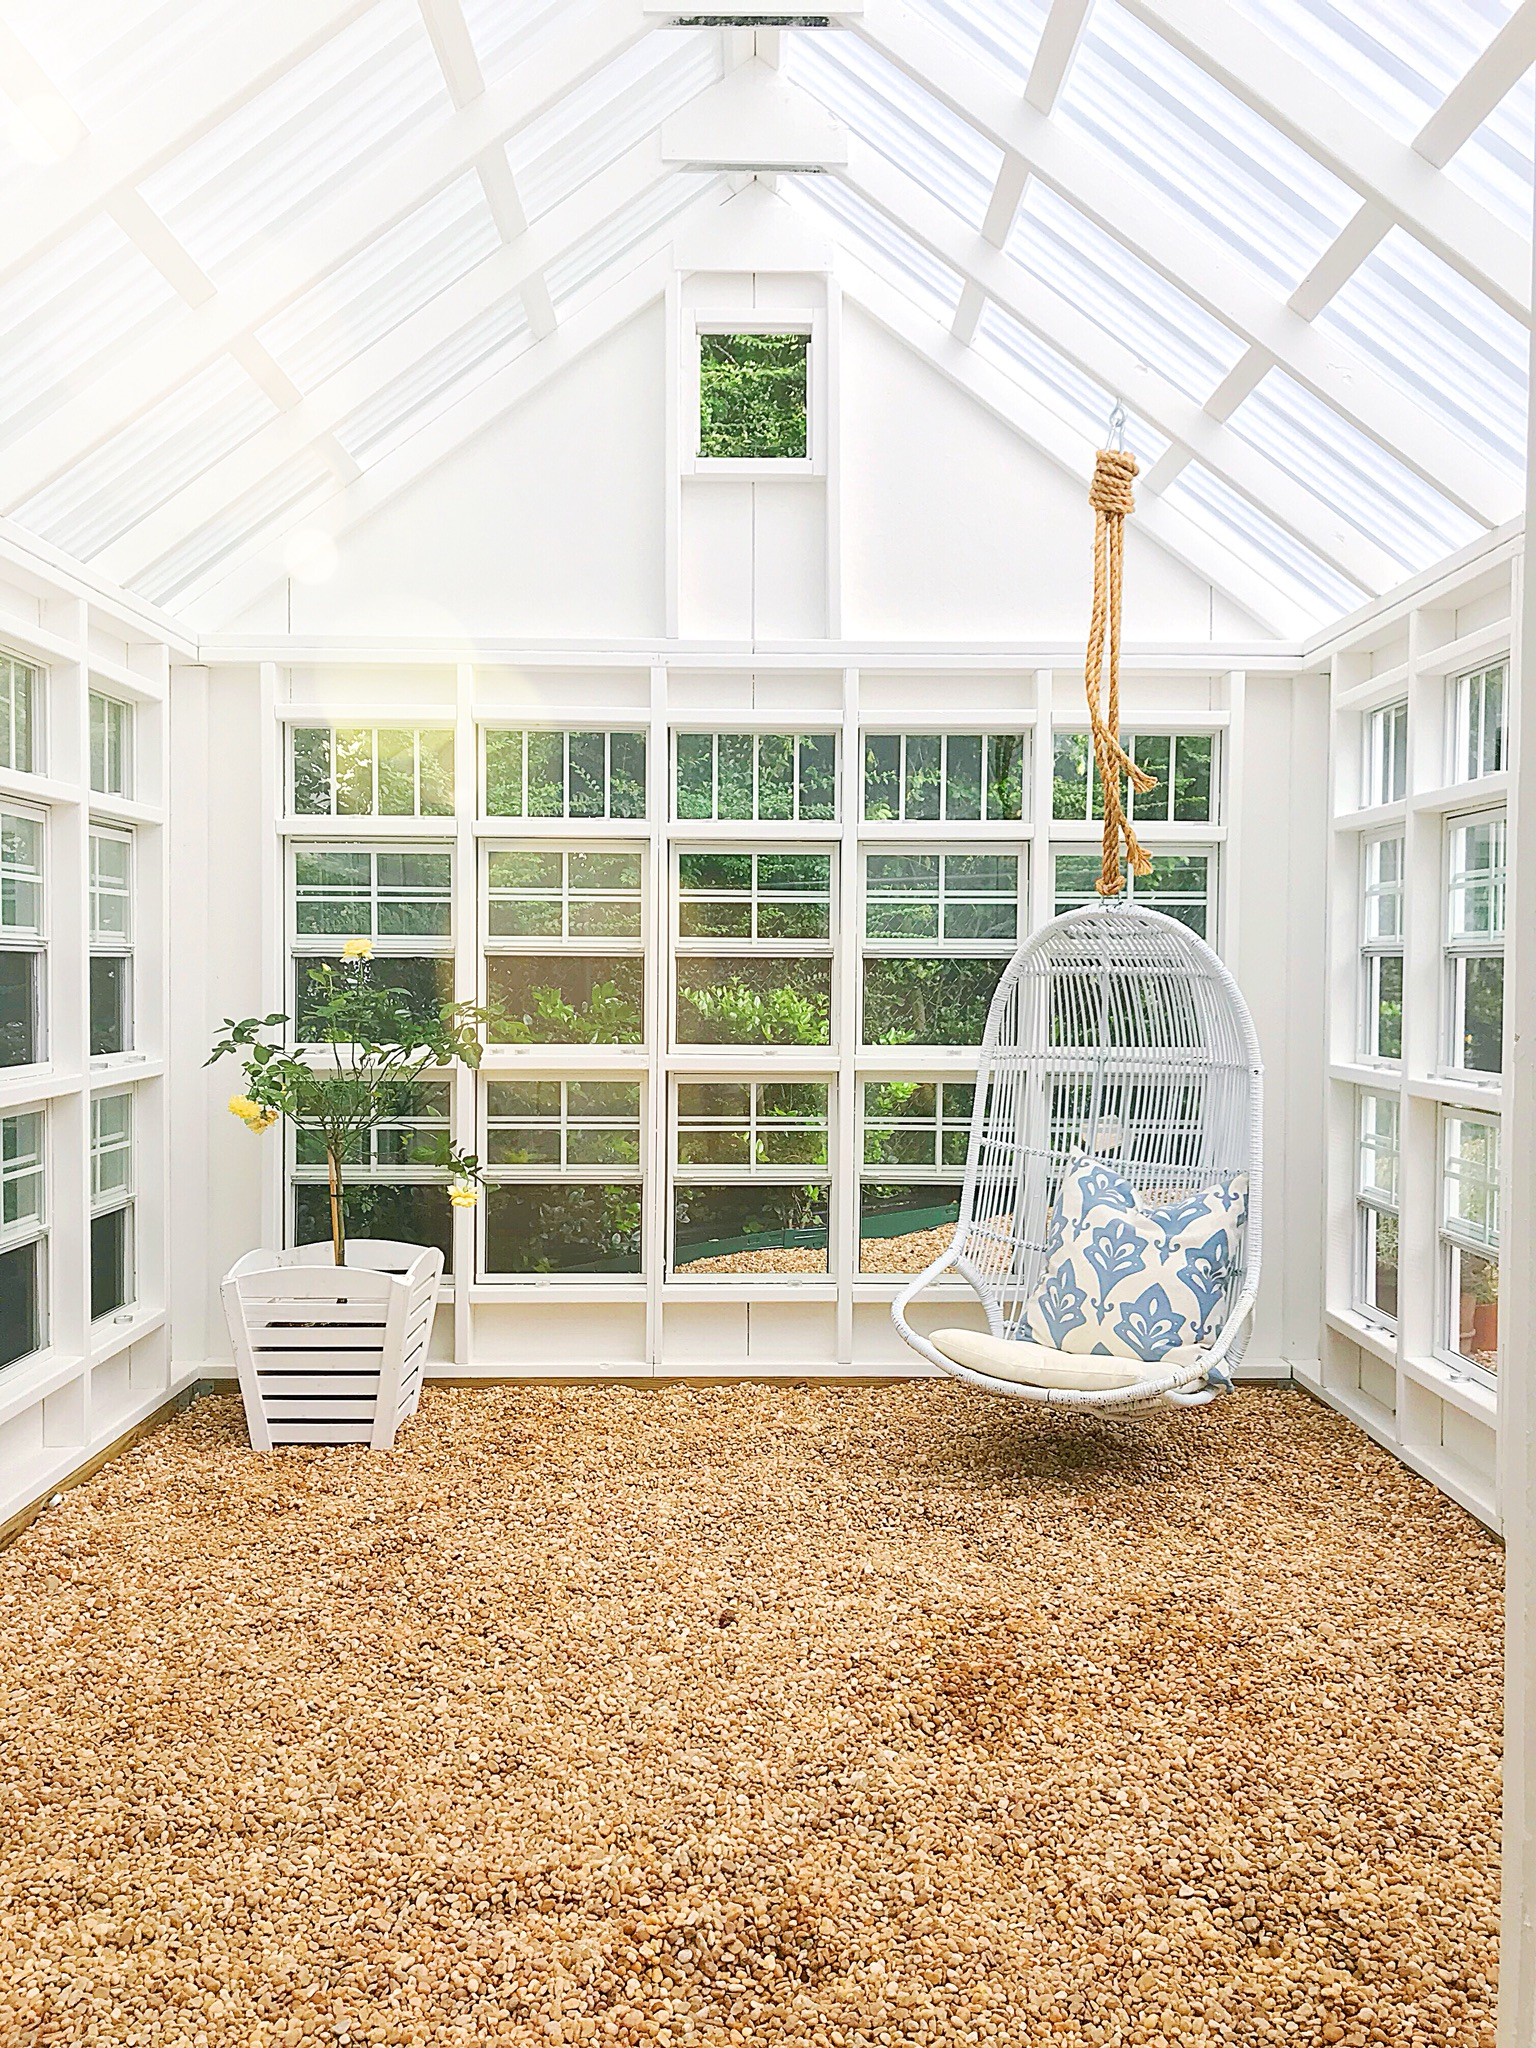 Like our Playhouse? - We think you'll love our Greenhouse too! Click here for that post!